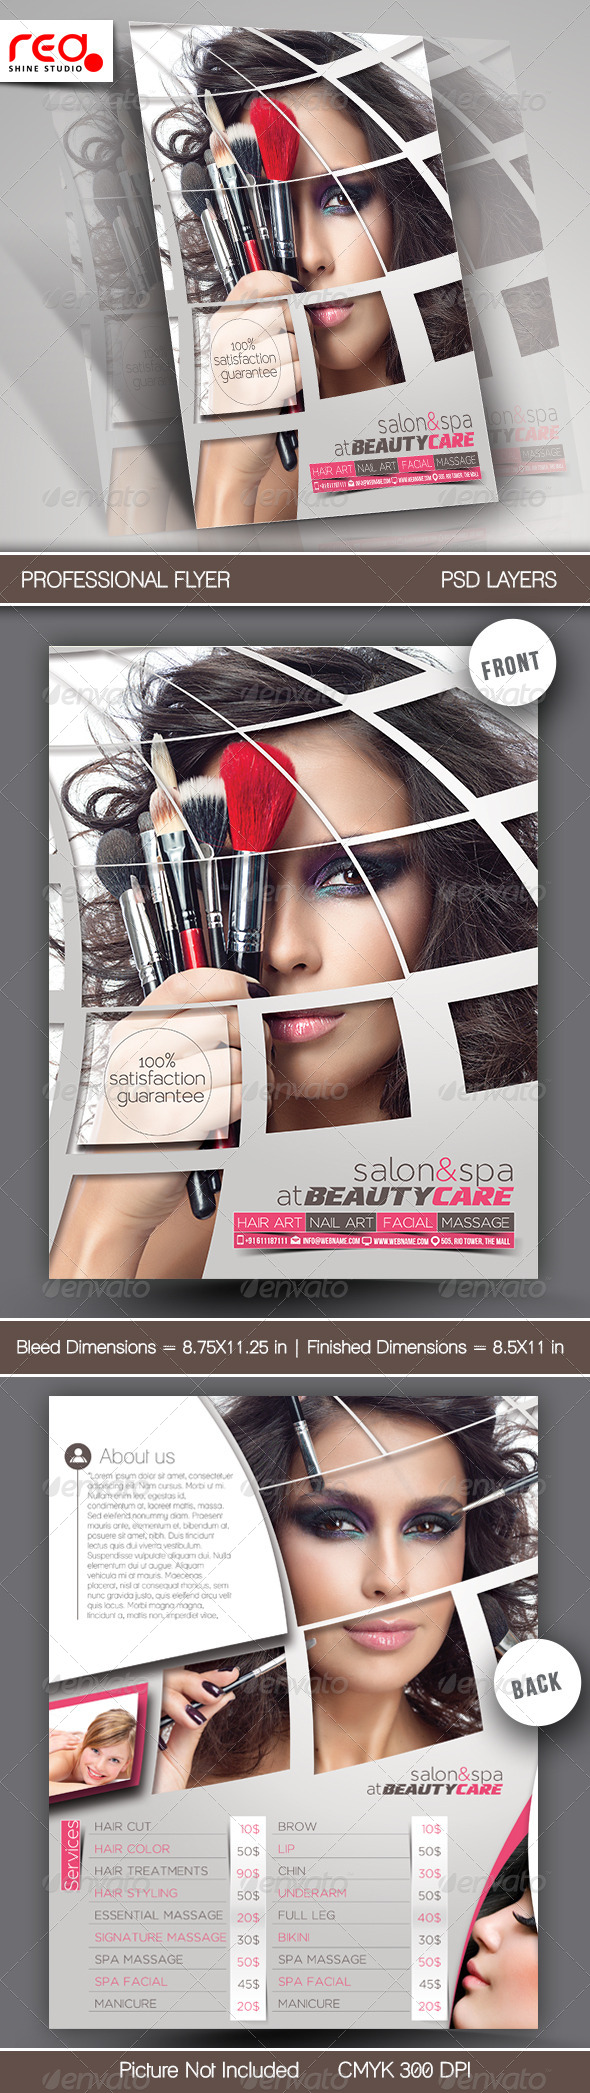 GraphicRiver Beauty Care & Salon Flyer Template 7547963